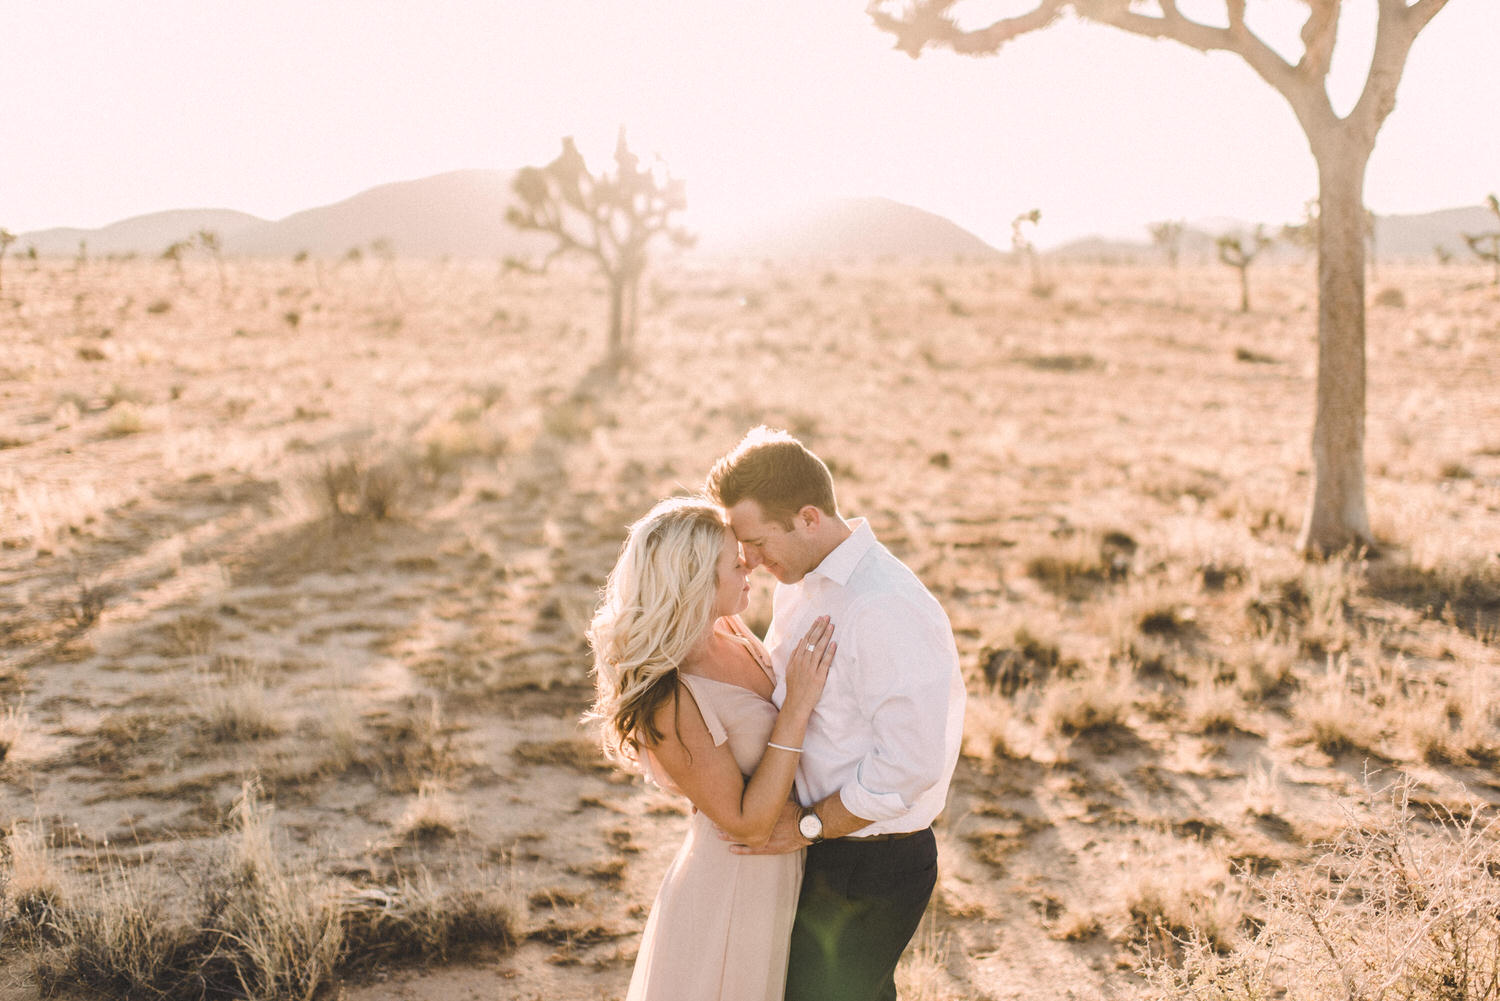 Joshua Tree California Engagement Session at sunset